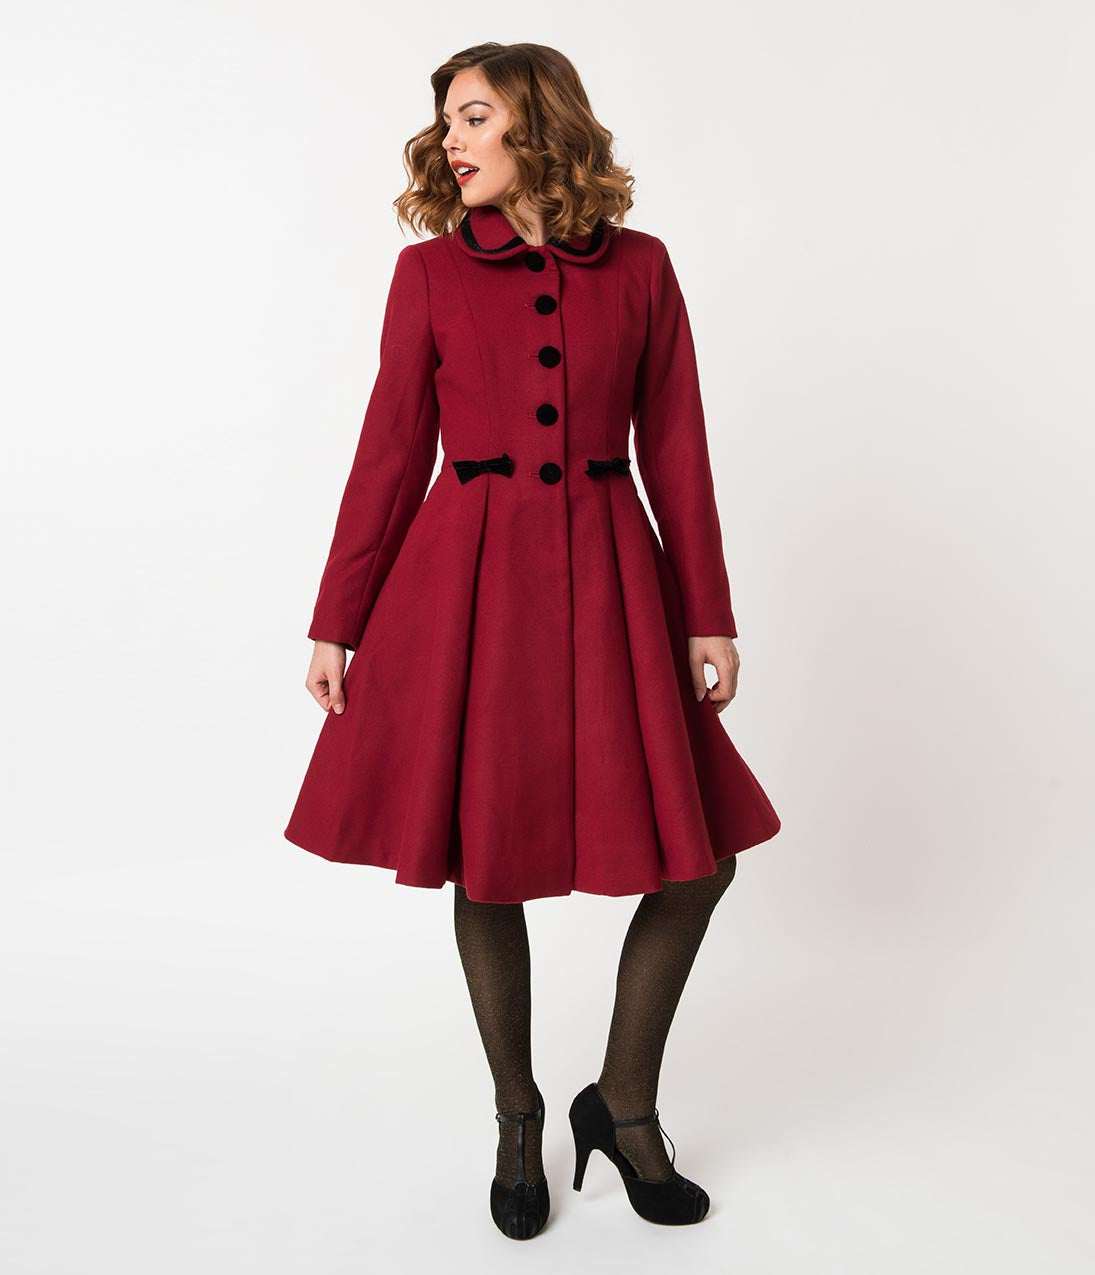 1950s Jackets, Coats, Bolero | Swing, Pin Up, Rockabilly Hell Bunny 1950S Style Burgundy Red Felt Button Up Olivia Coat $156.00 AT vintagedancer.com